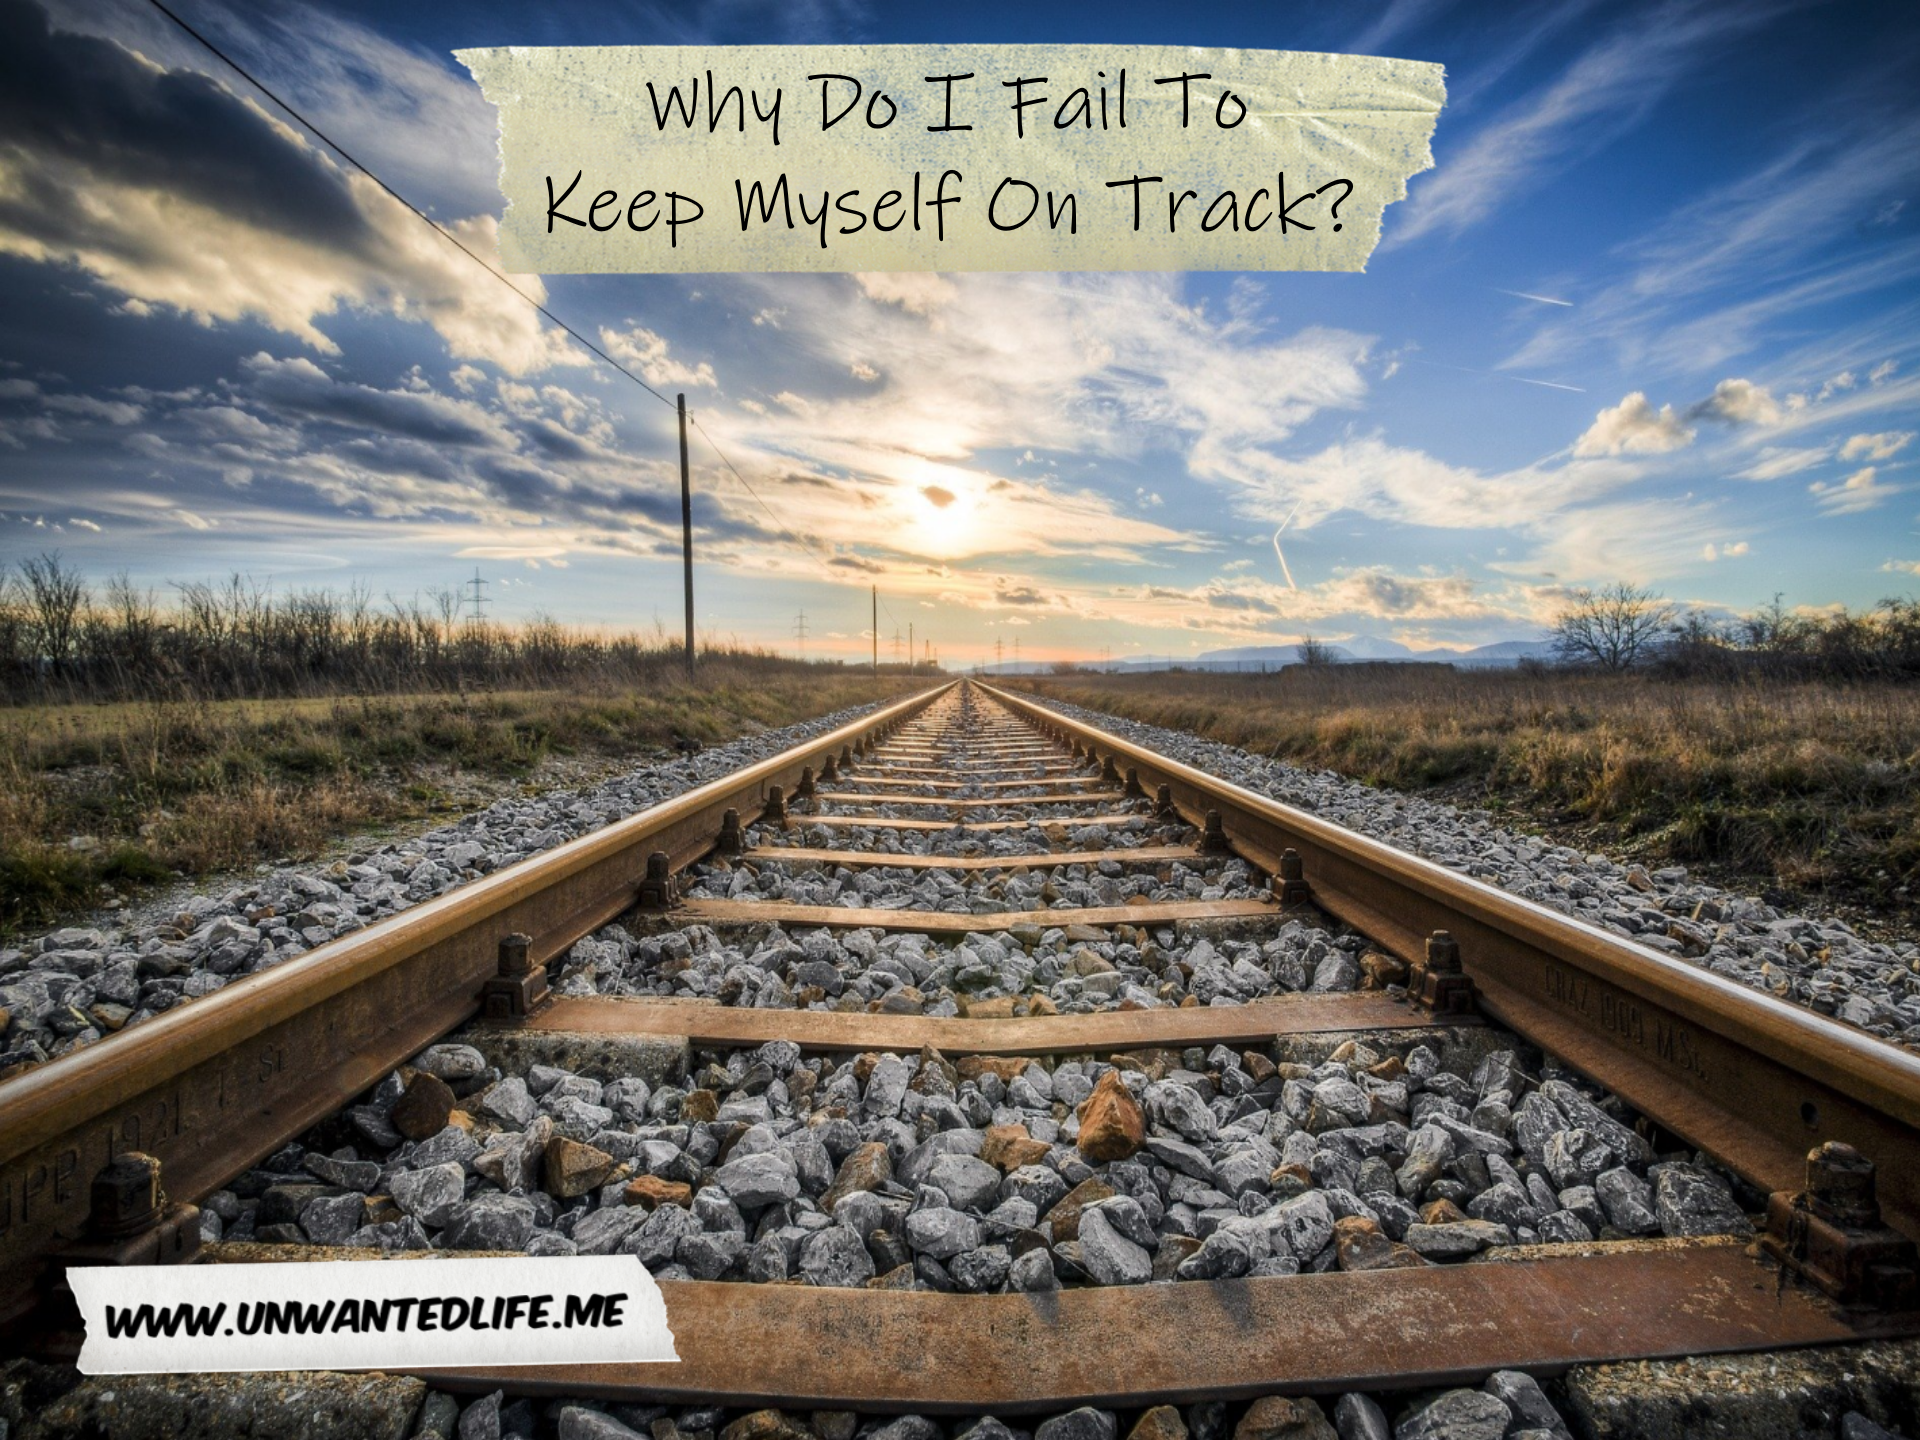 A picture of a train track leading towards a beautiful sky view with the title of the article (Why Do I Fail To Keep Myself On Track?) across the top of the image